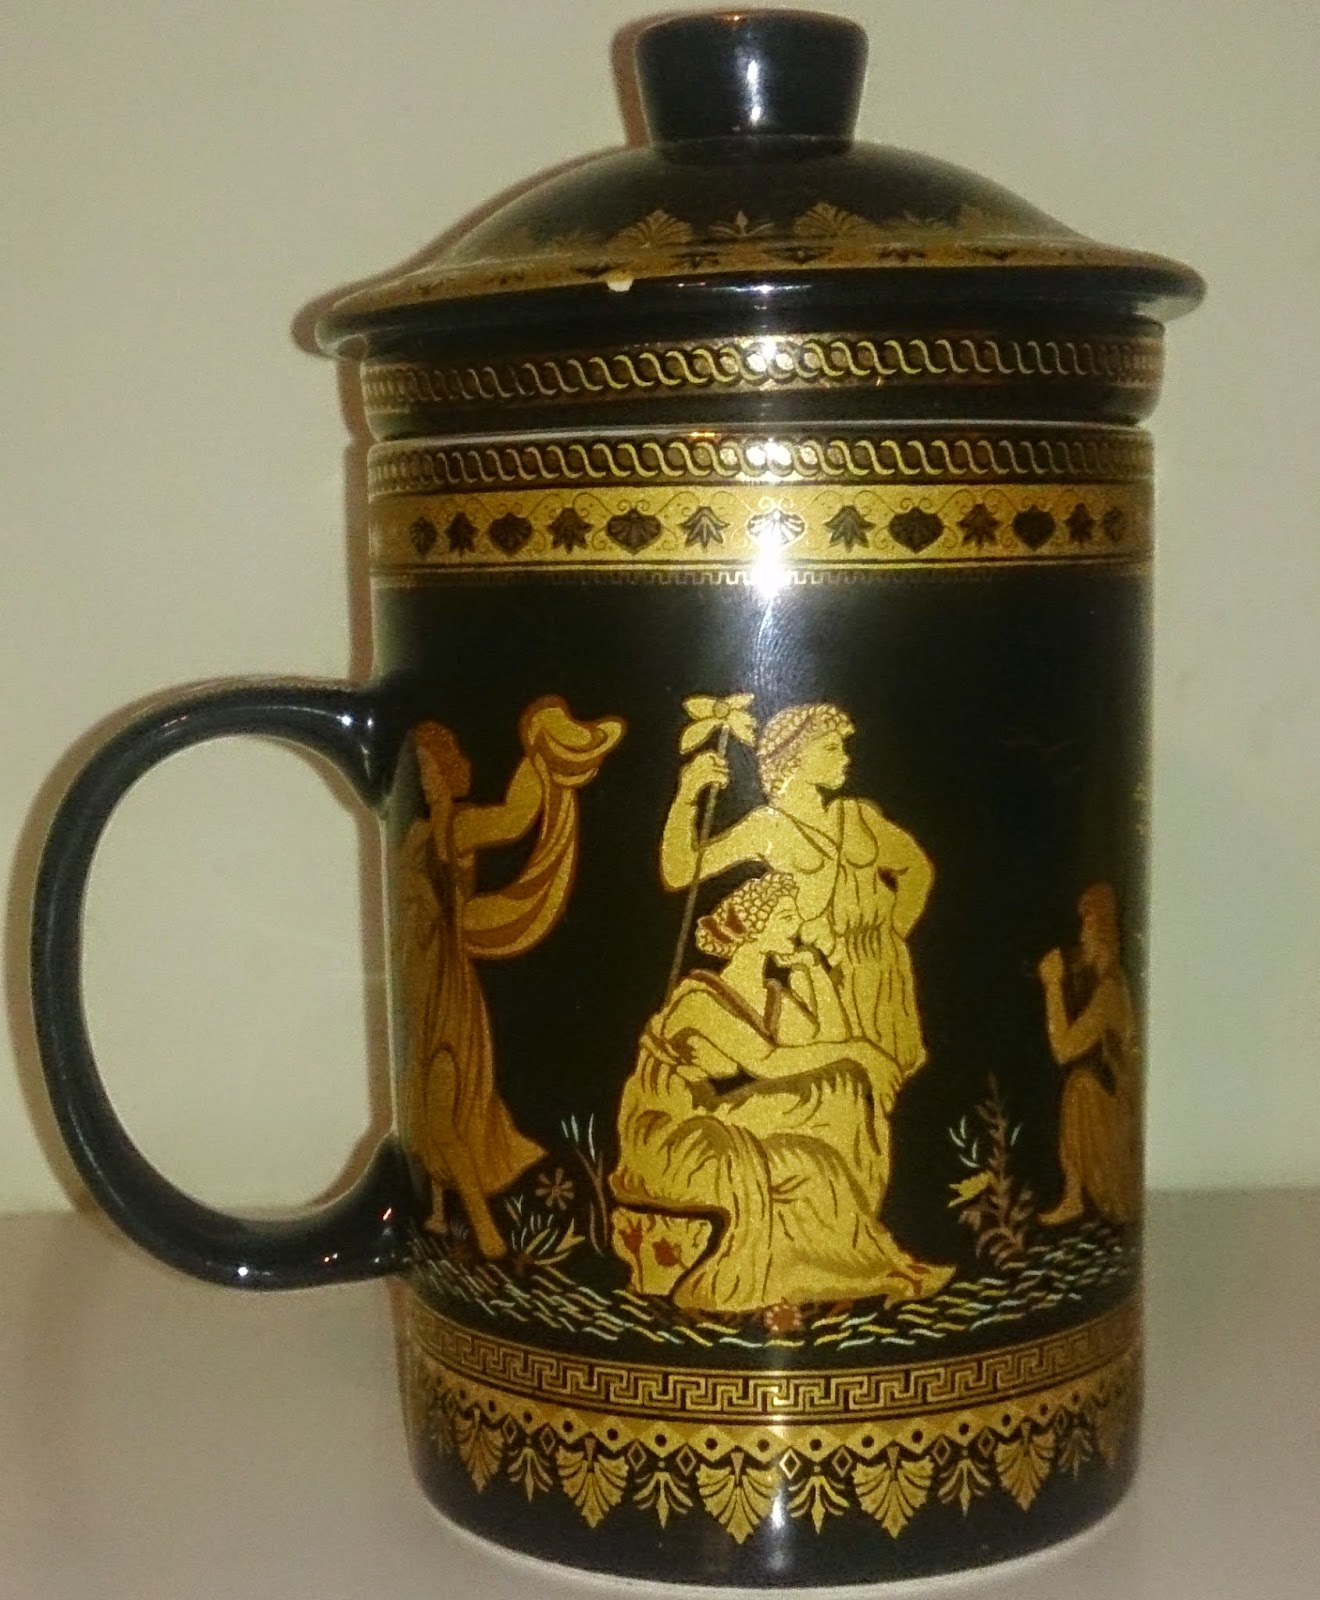 Grecian Tea Mug from Hong Kong